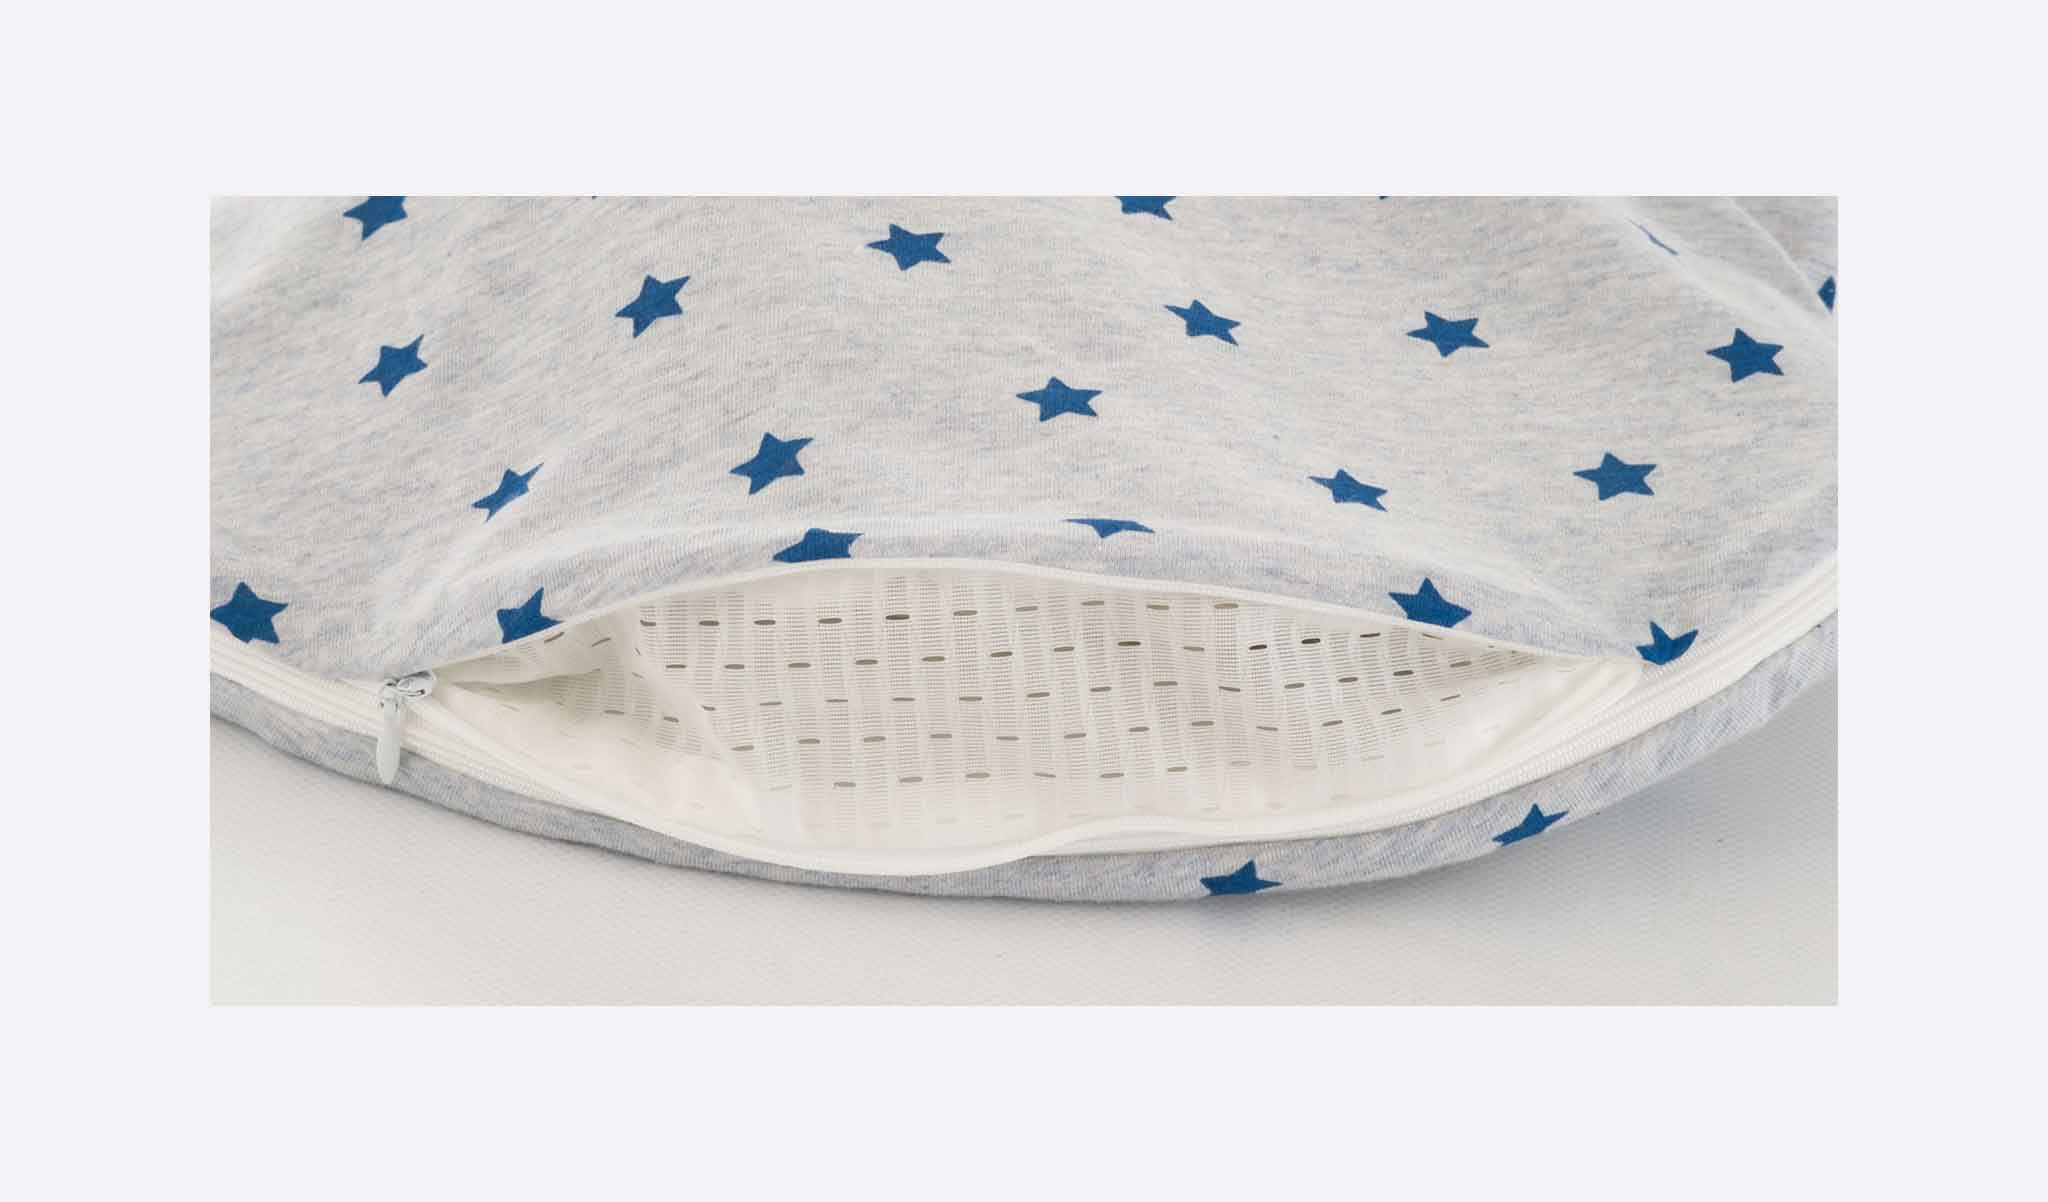 S0103355 - sleeping bag set dream of stars blue